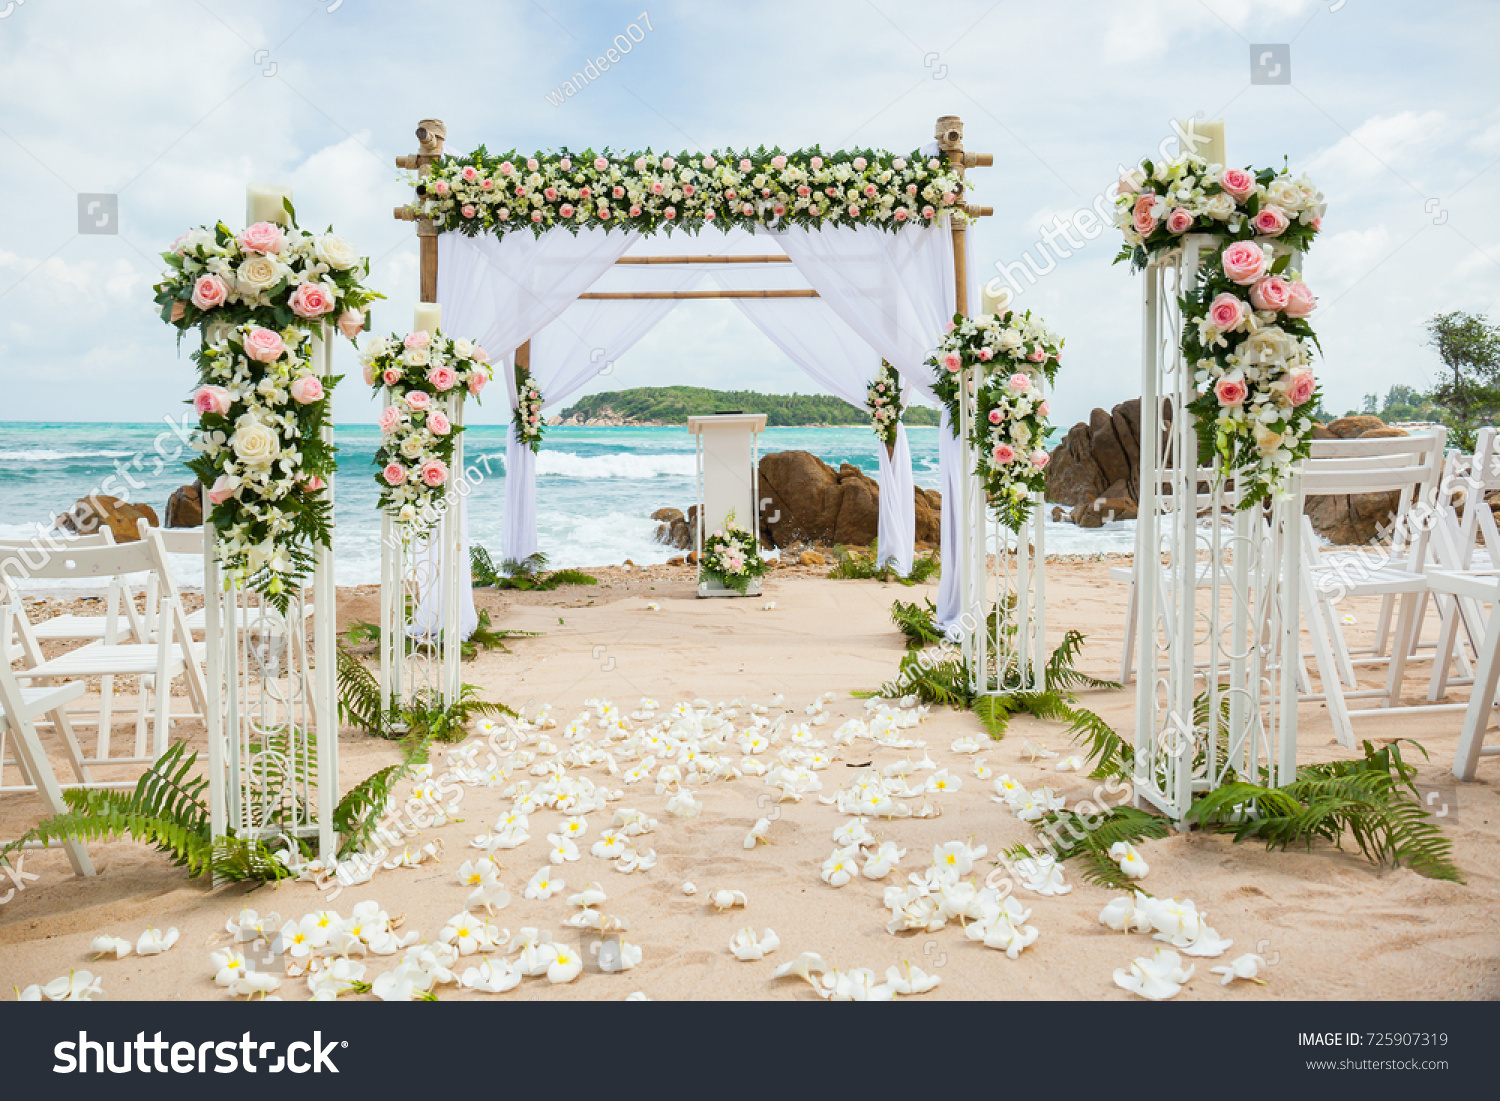 Beautiful Wedding Decorated On Beach Wedding Stock Photo (Edit Now)  725907319